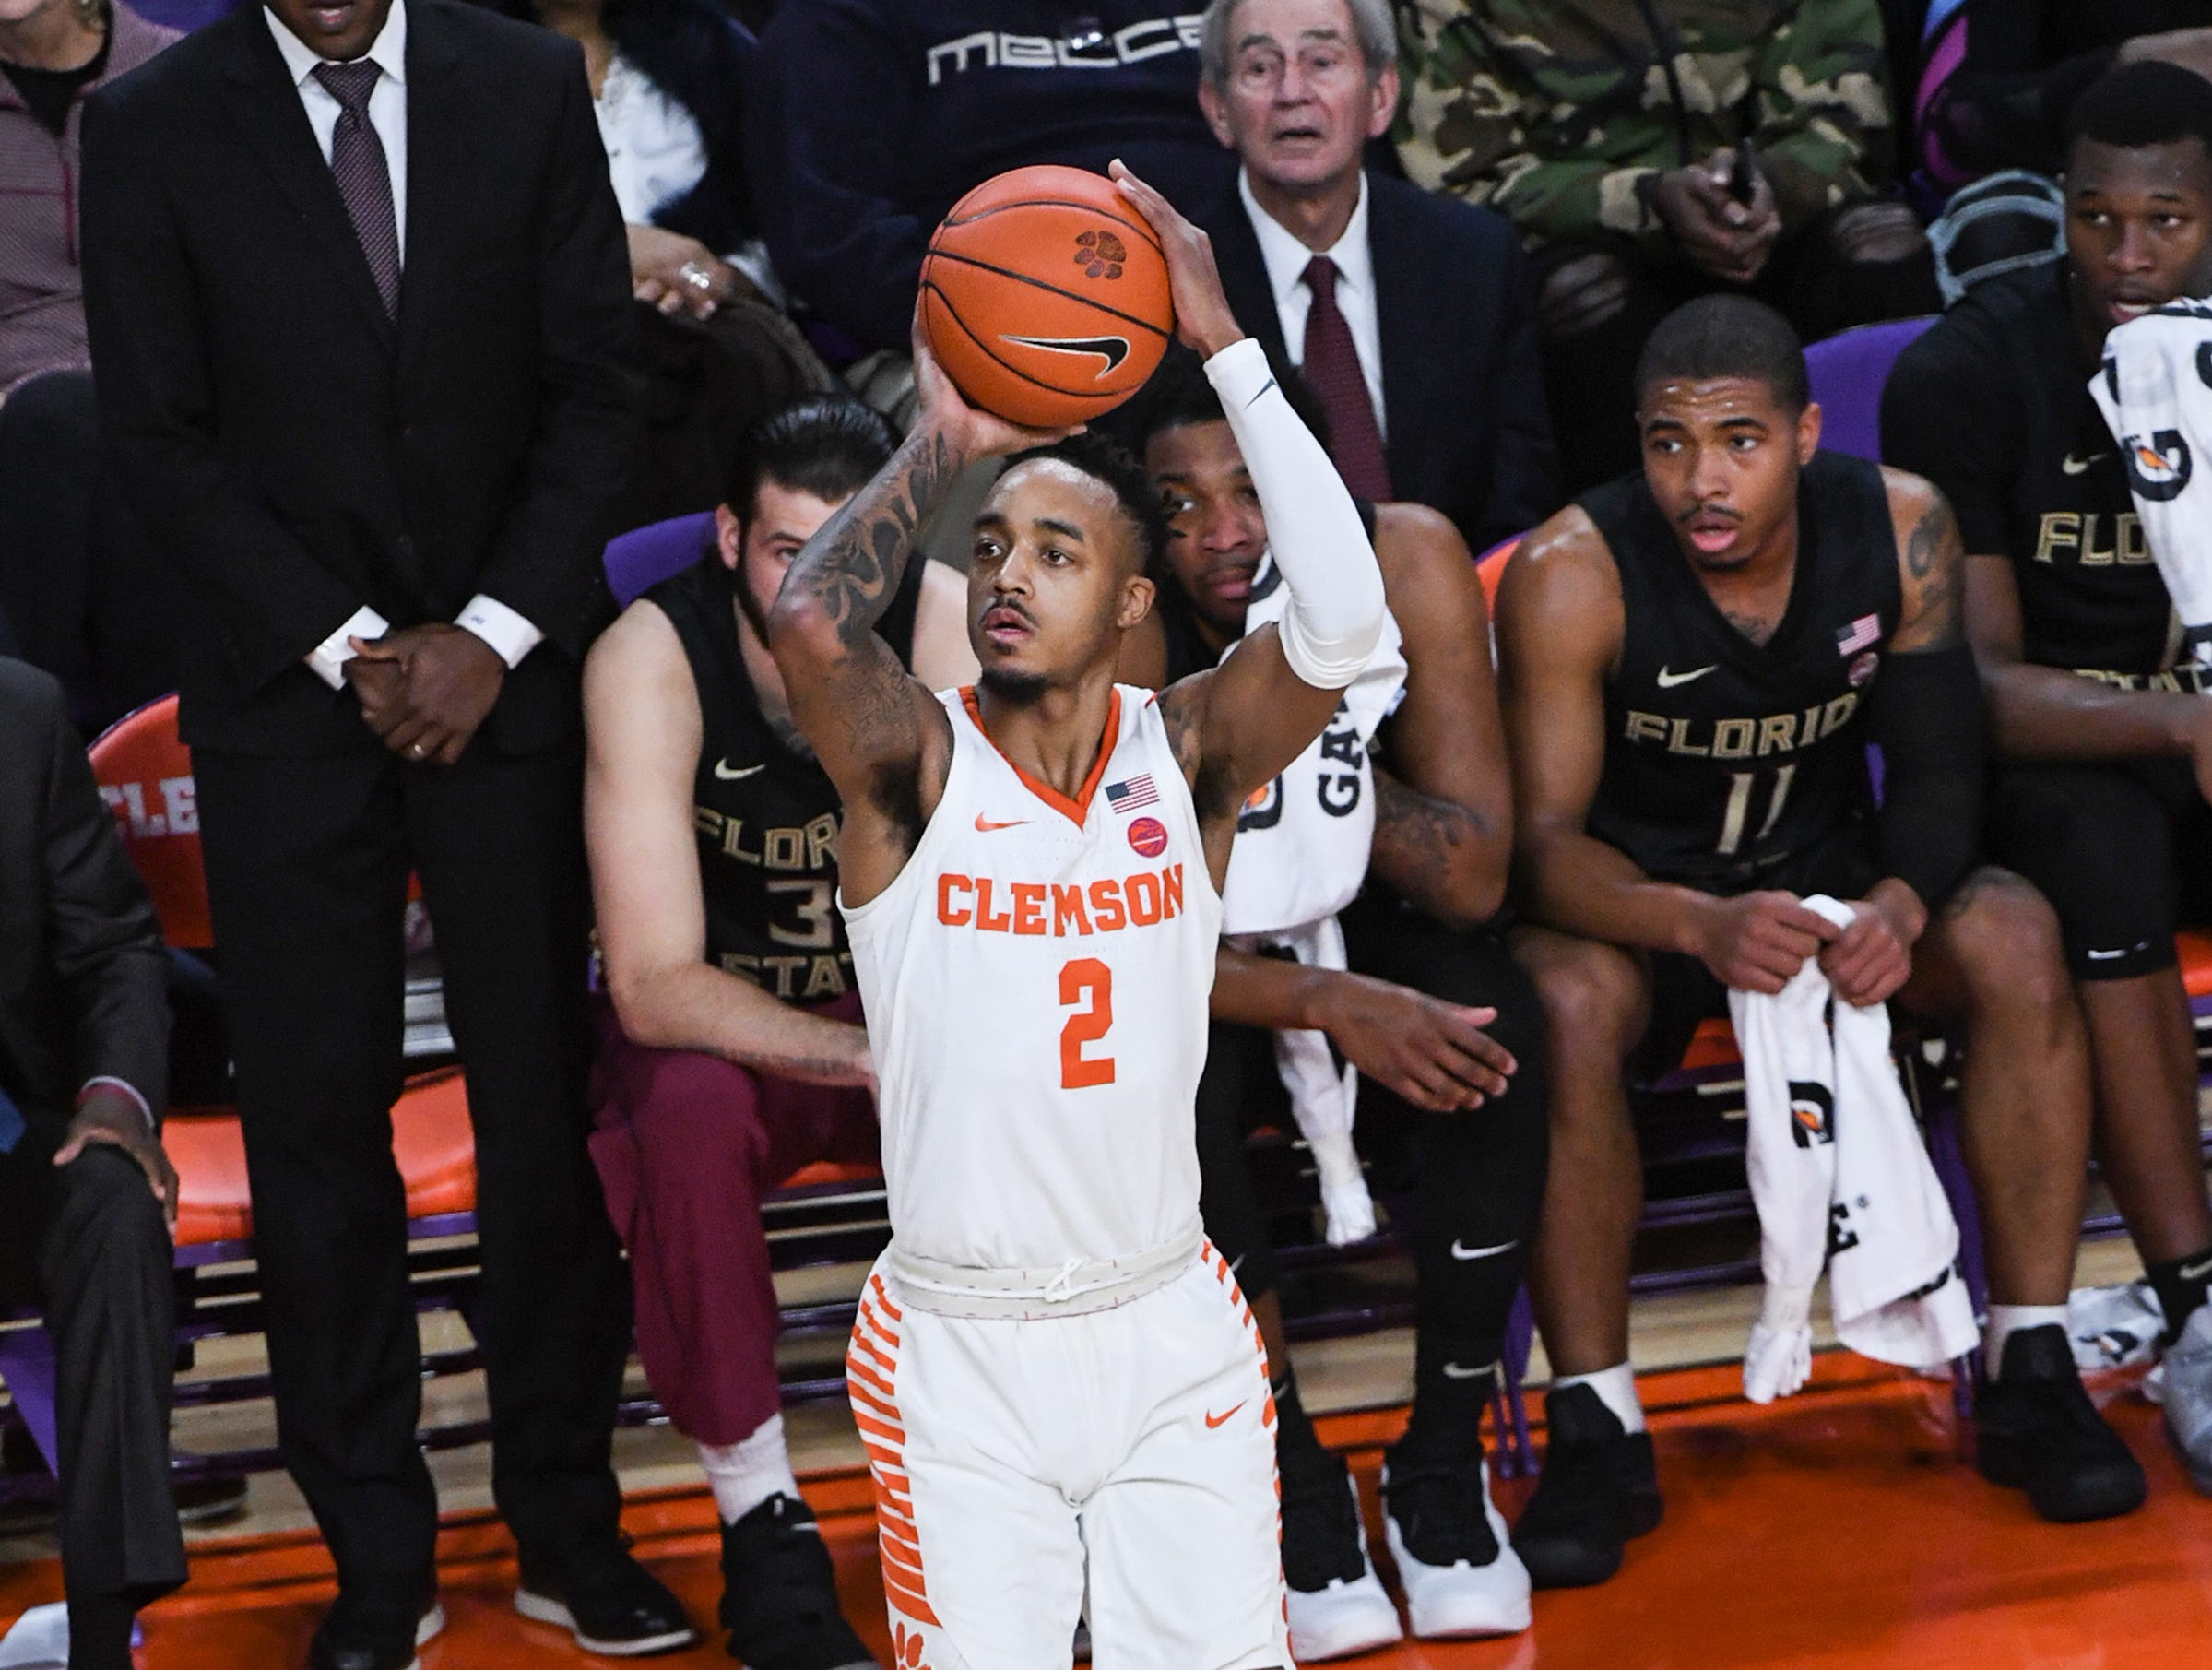 Clemson guard Marcquise Reed (2) shoots a three-pointer against Florida State during the first half at Littlejohn Coliseum in Clemson Tuesday, February 19, 2019.